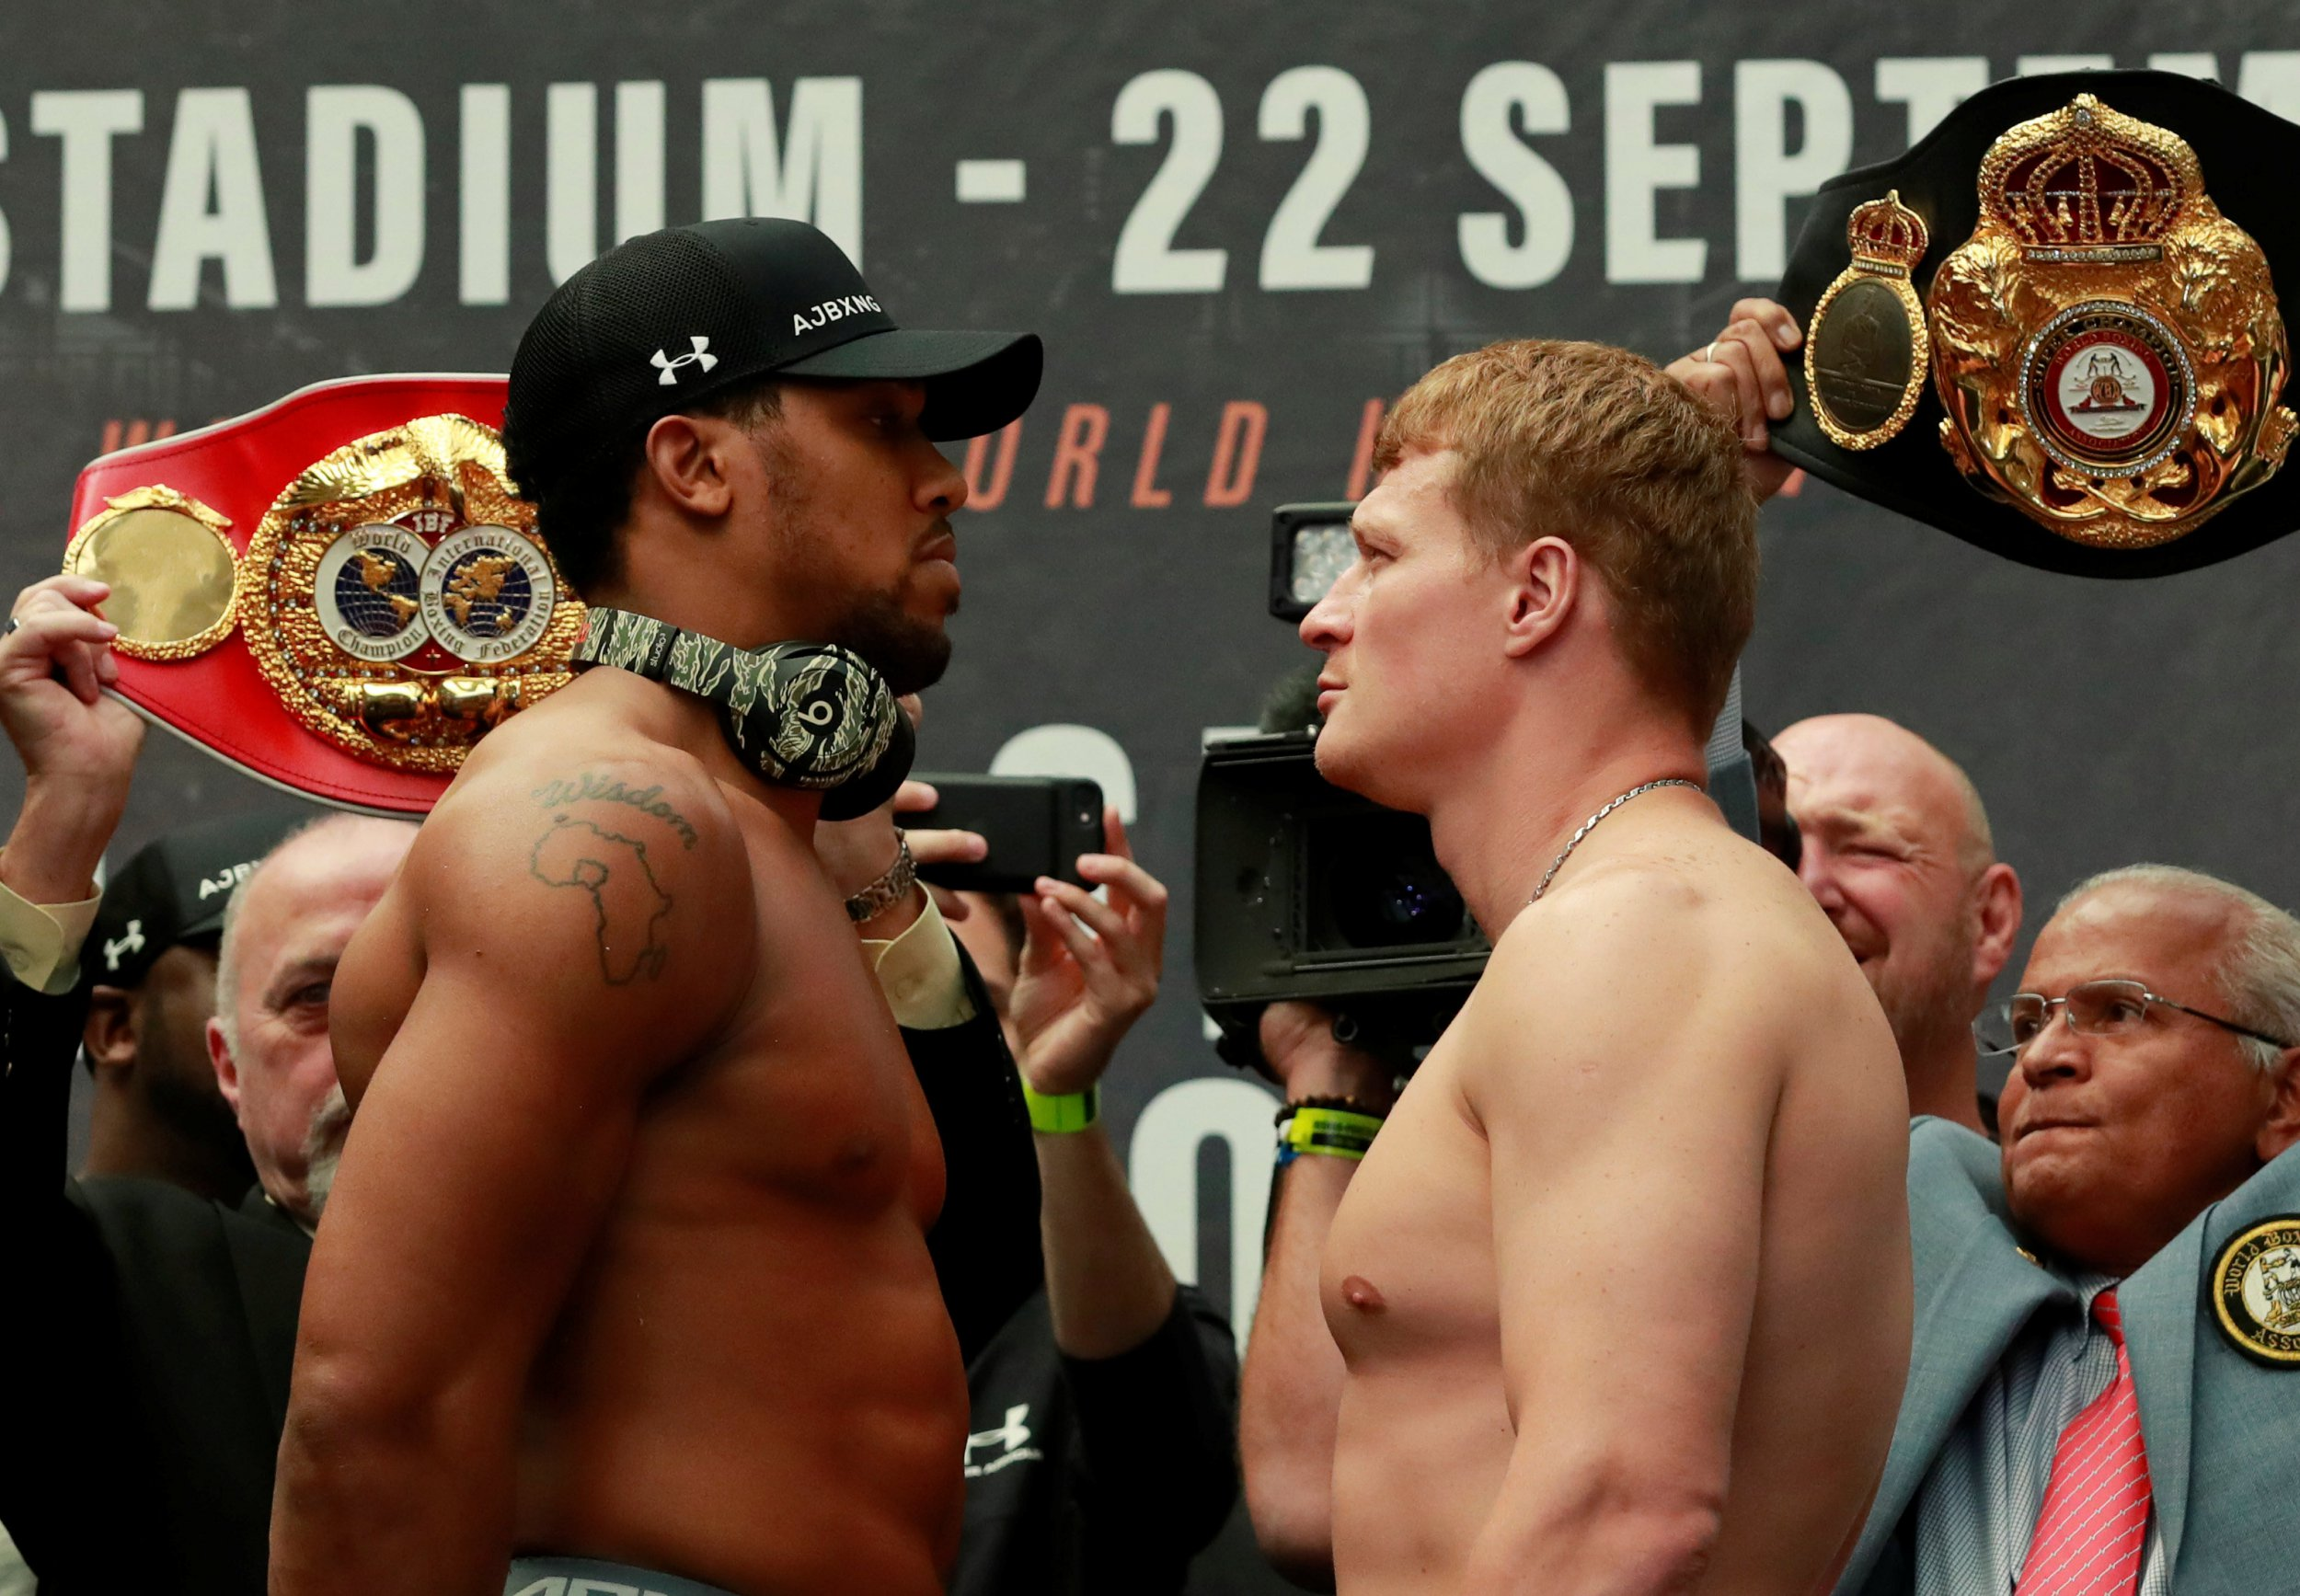 Boxing - Anthony Joshua & Alexander Povetkin Weigh-In - London, Britain - September 21, 2018 Anthony Joshua and Alexander Povetkin go head to head during their weigh-in Action Images via Reuters/Andrew Couldridge